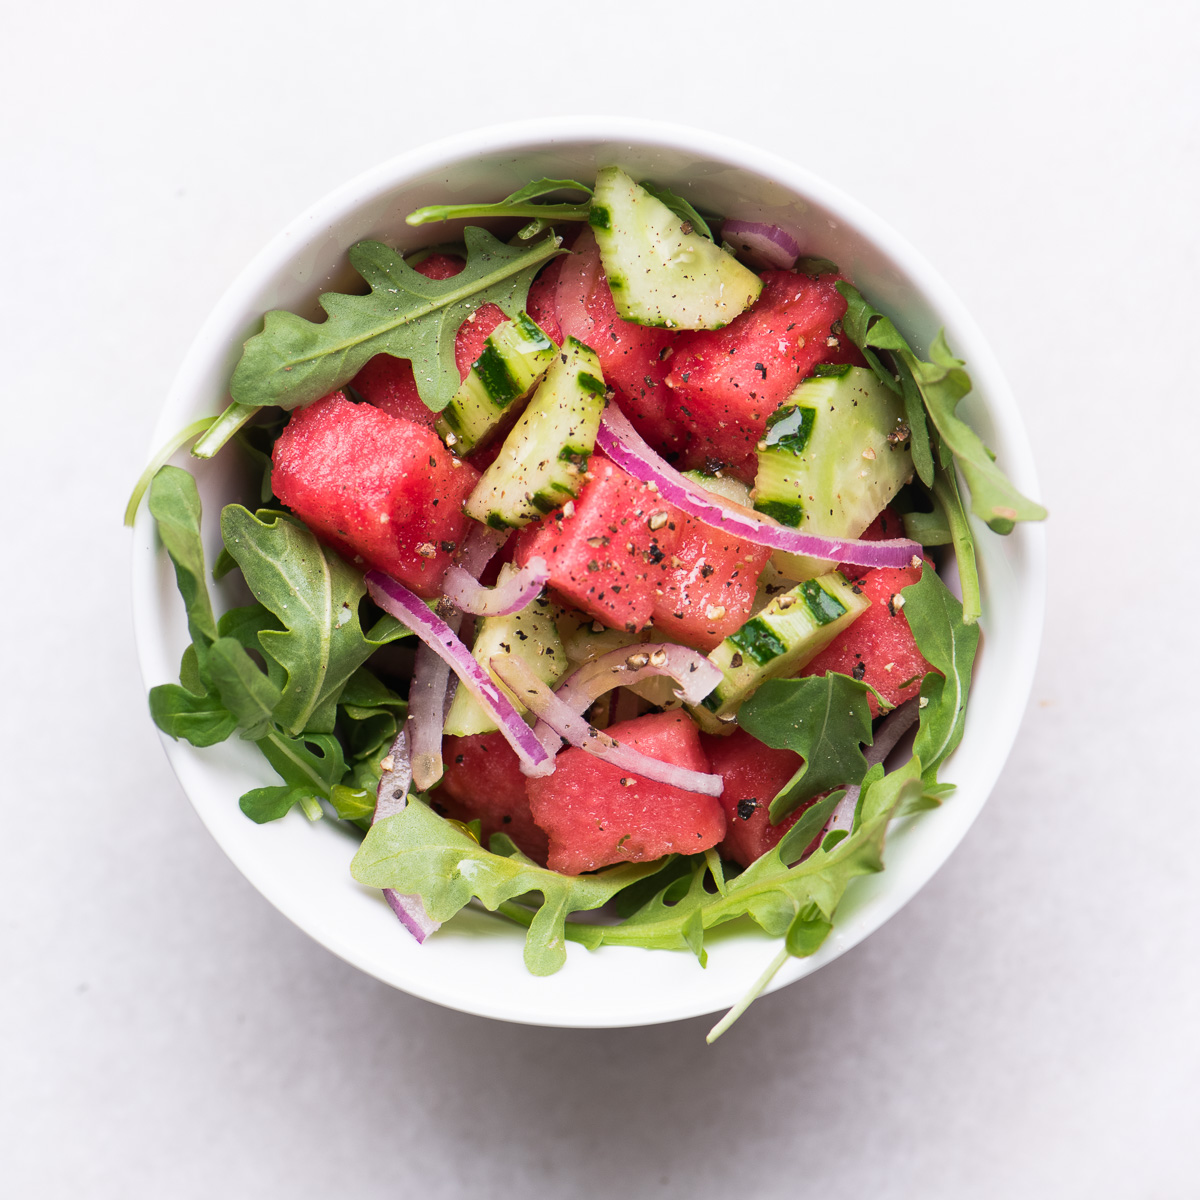 Watermelon, Cucumber and Arugula Salad